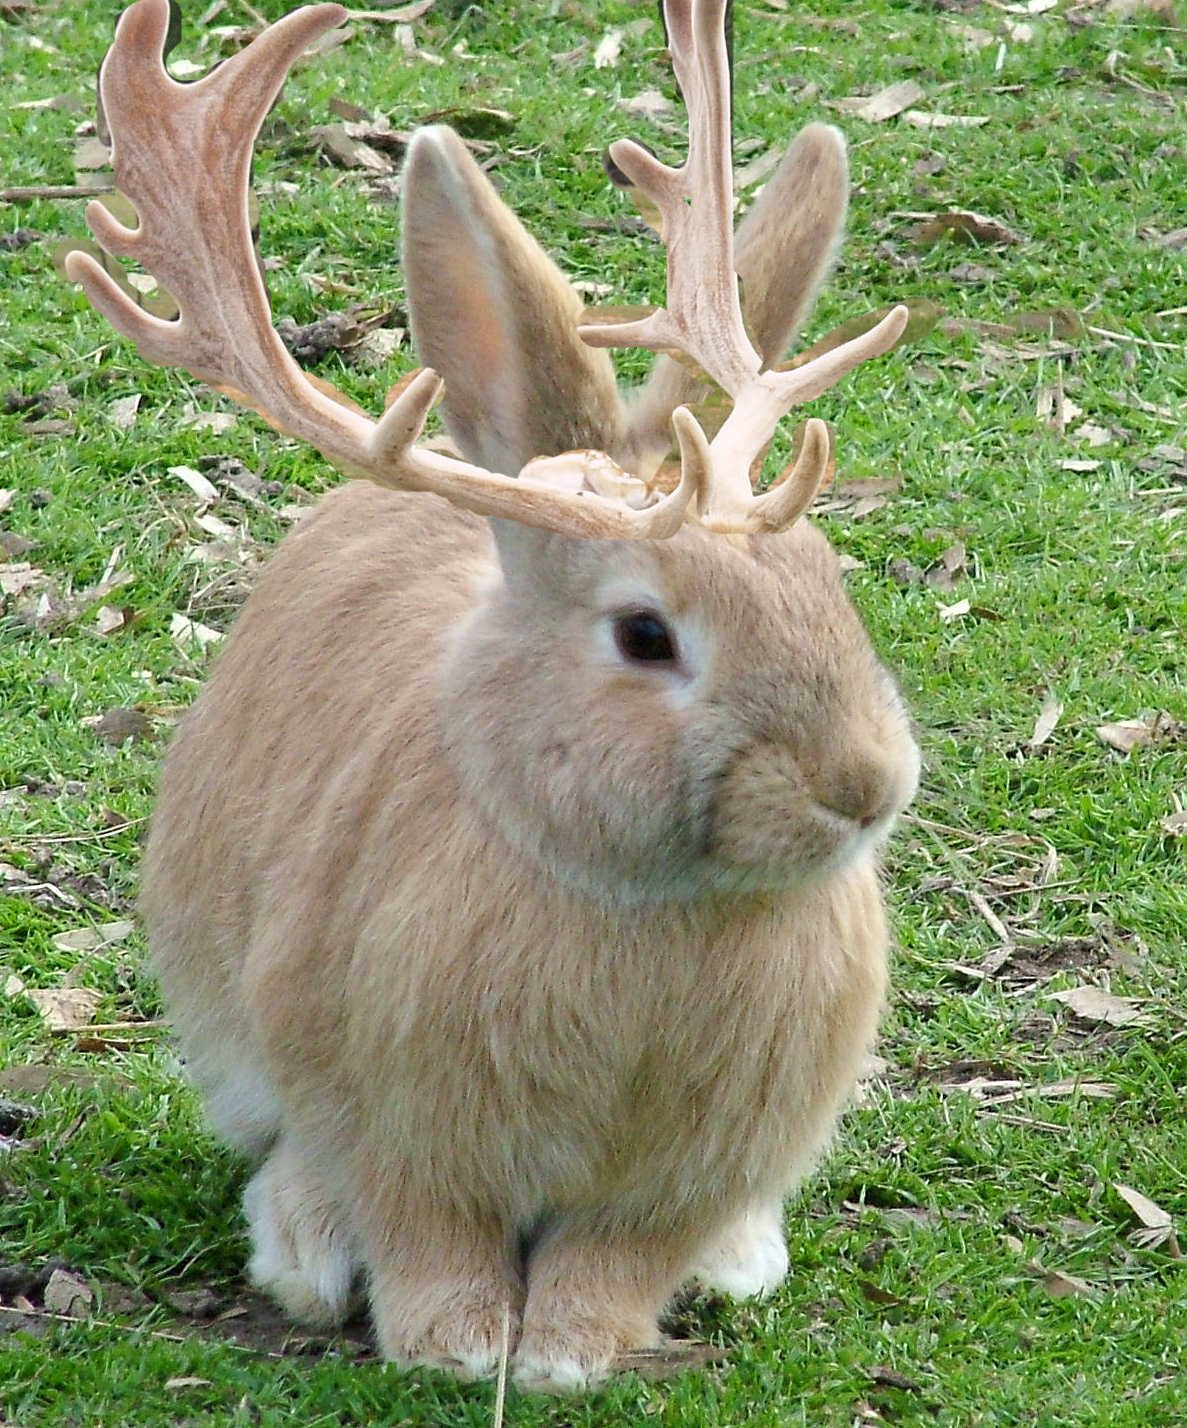 like to acquire a stuffed JACKALOPE for a friend. Where can I